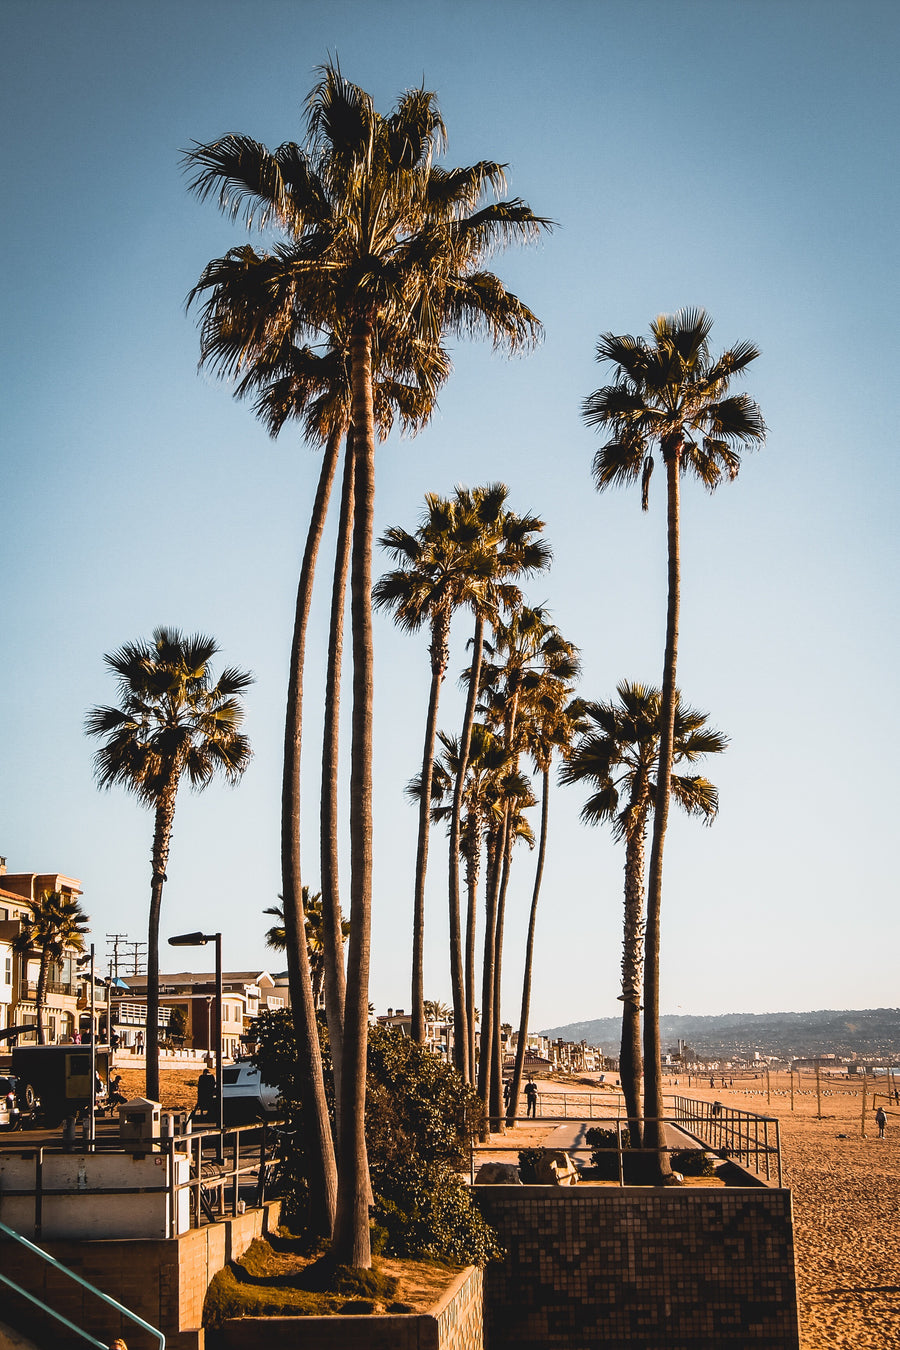 LOS ANGELES PALMS